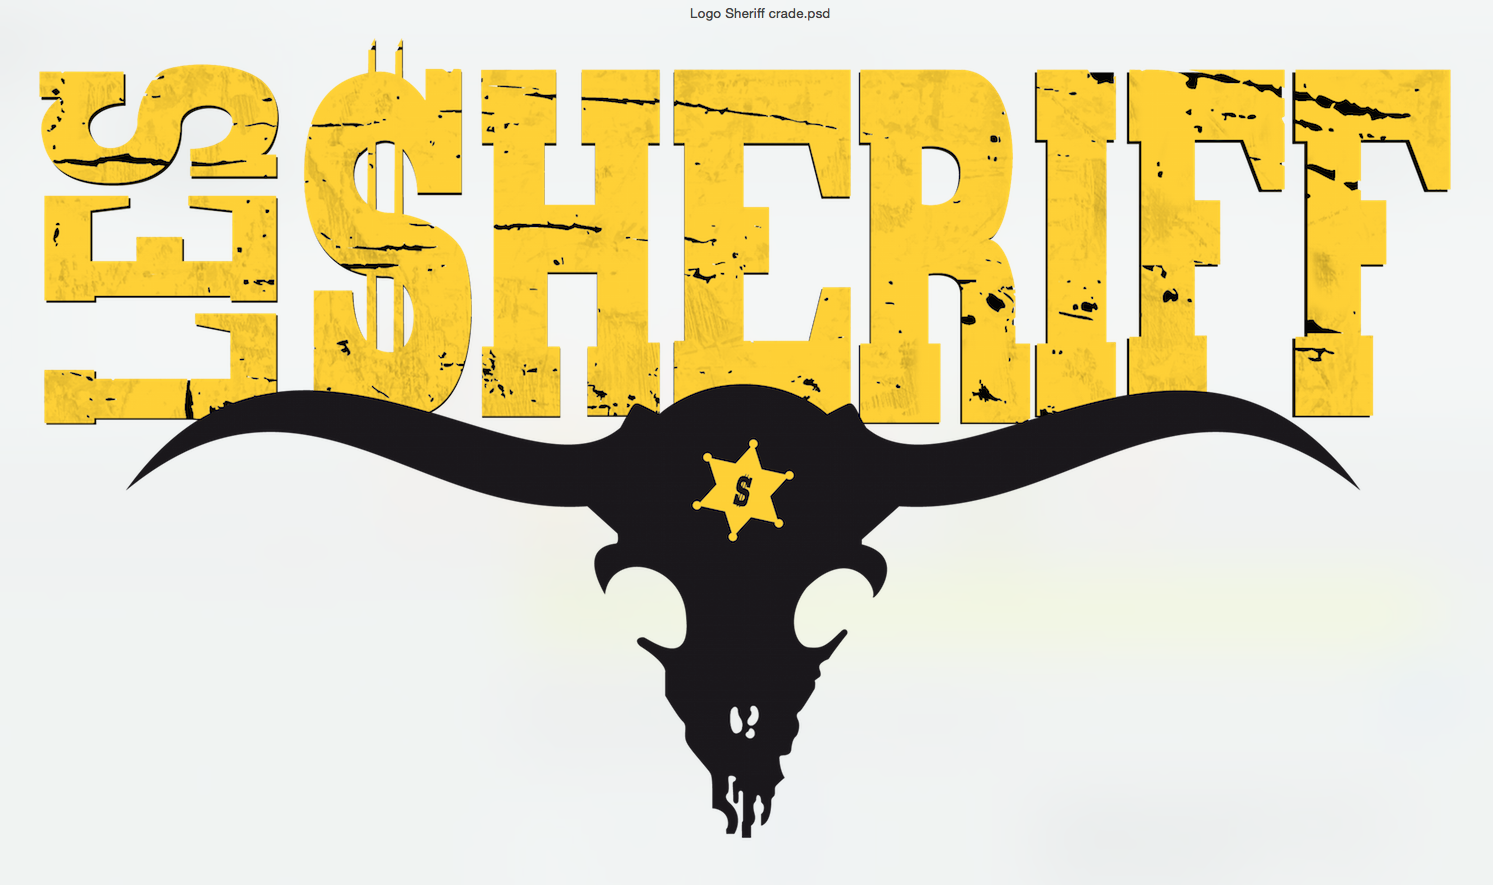 Les Sheriff + The Decline ! + Dex